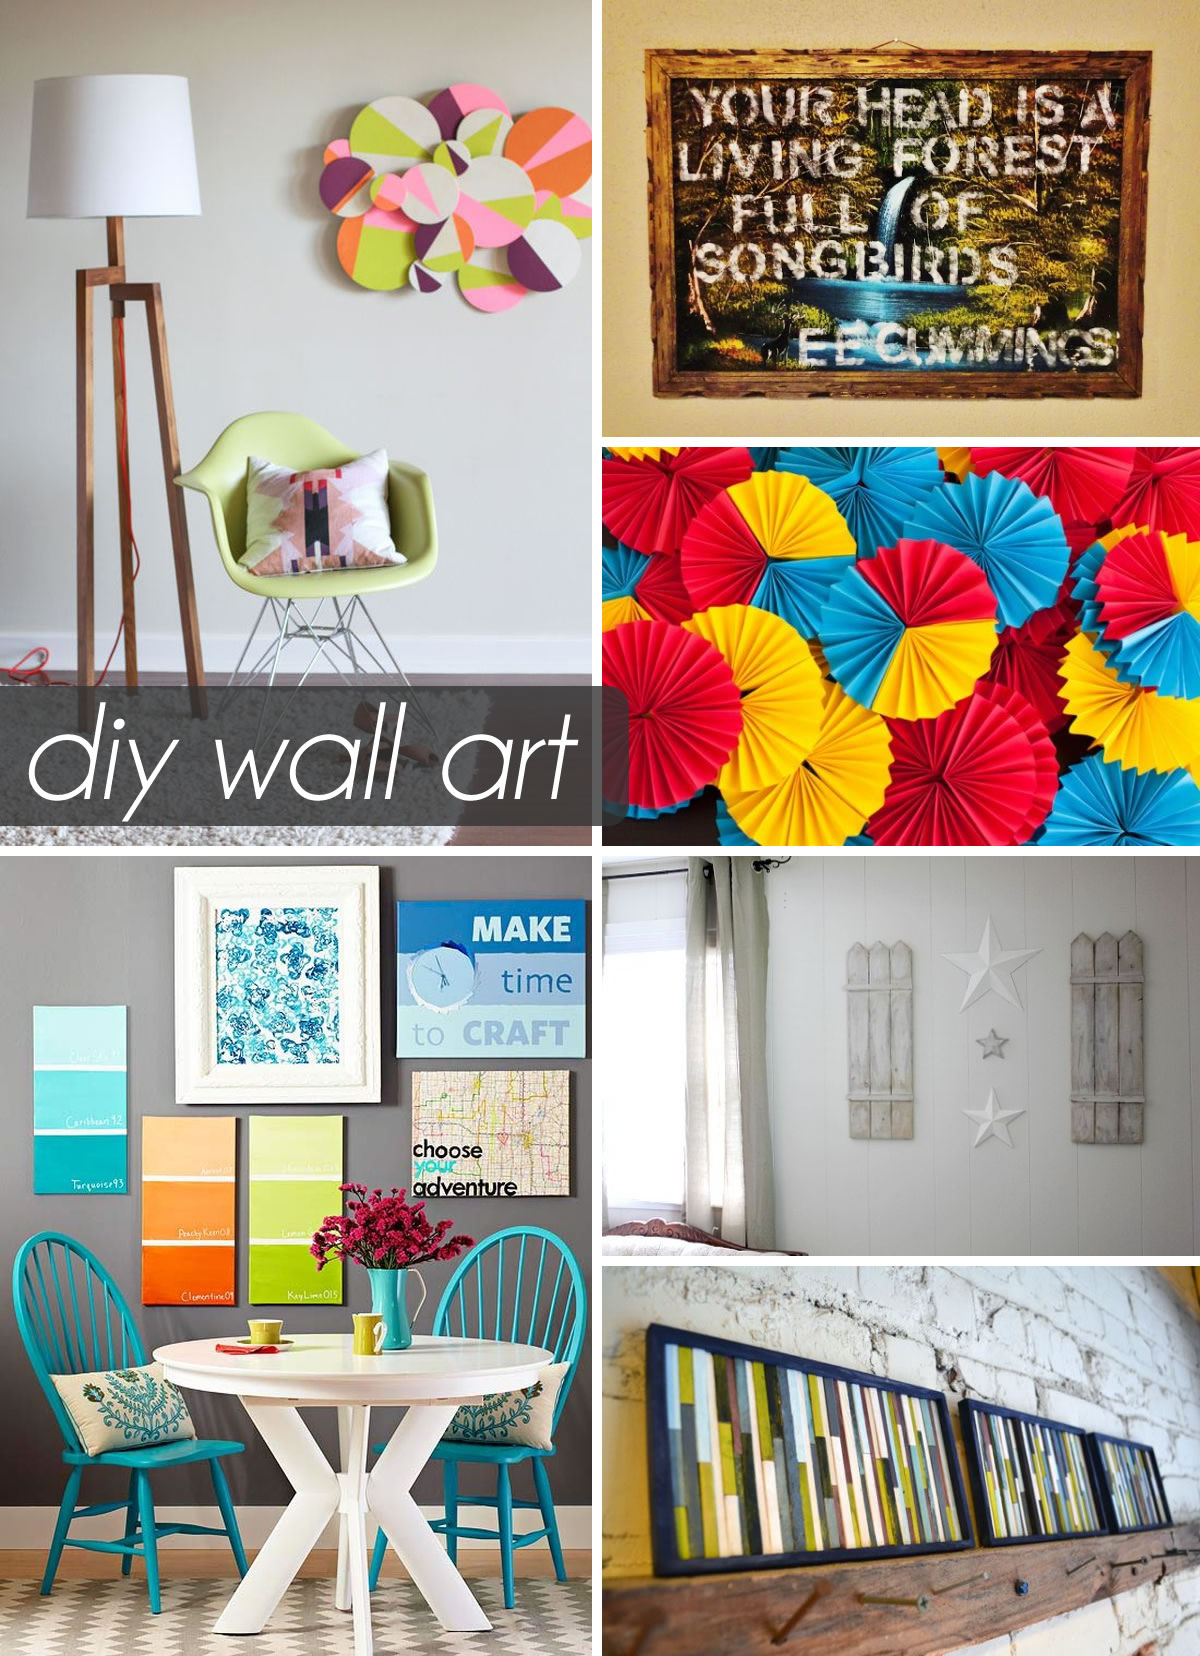 18 Beautiful DIY Wall Art Ideas For Your Home